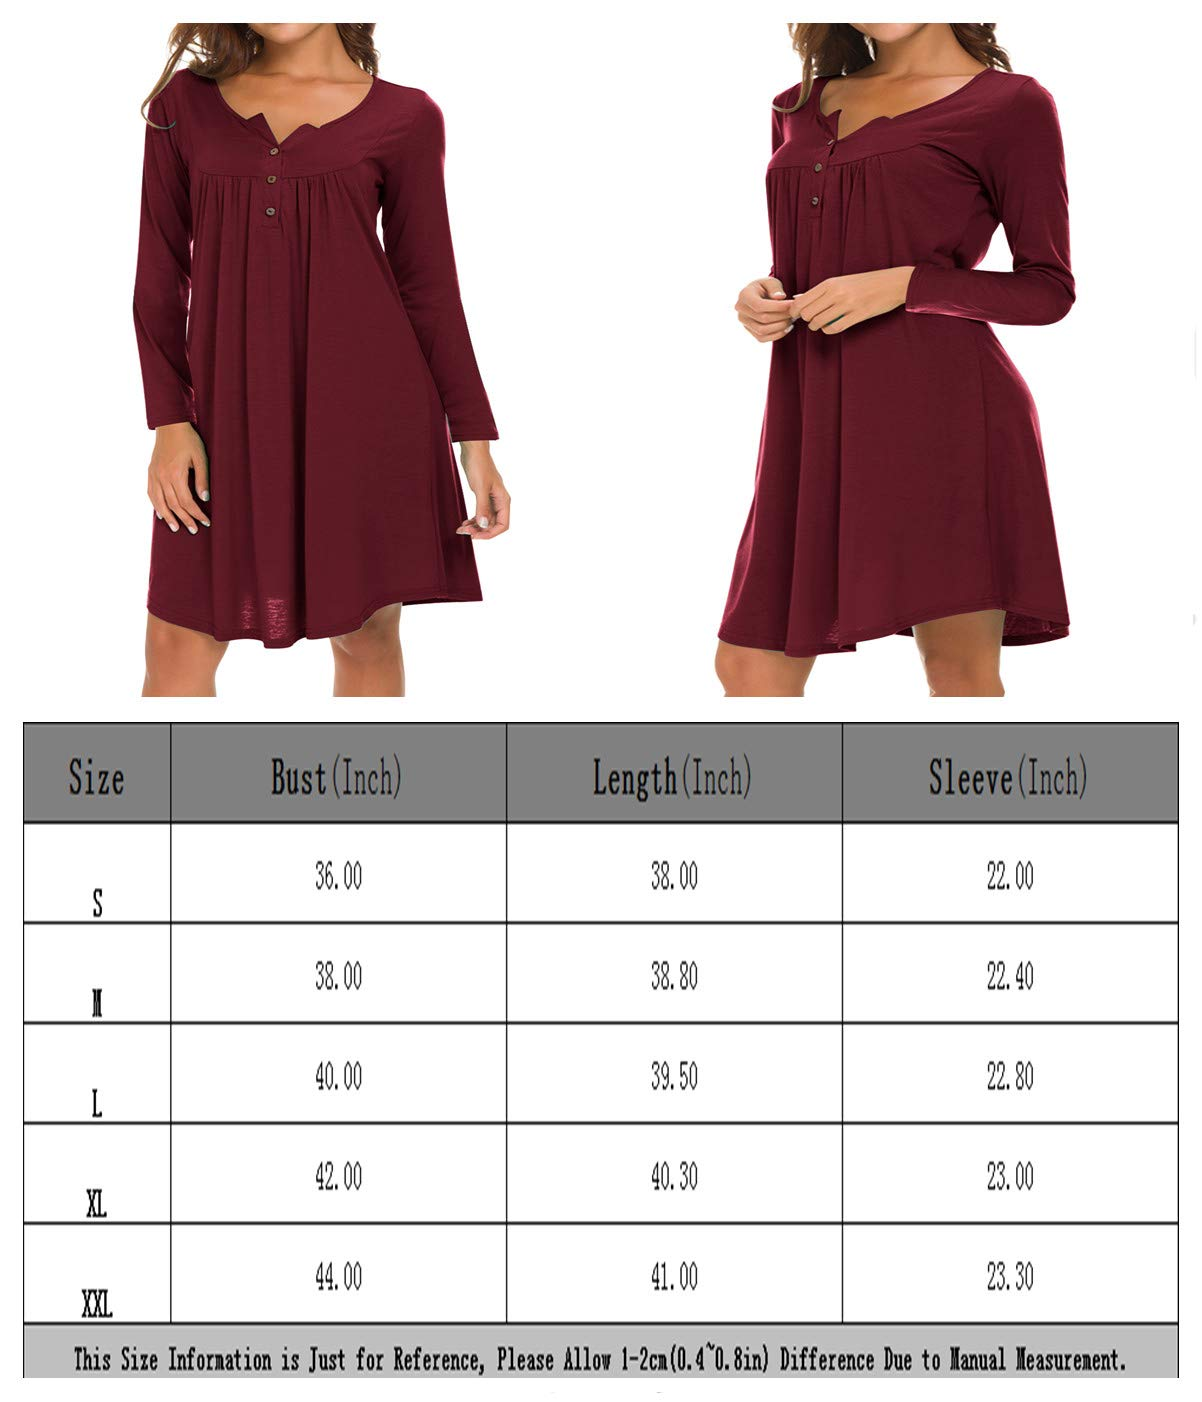 Eanklosco Long Sleeve Swing Dress Women Casual Loose Henley Shirt Dress (Wine Red, 2XL)